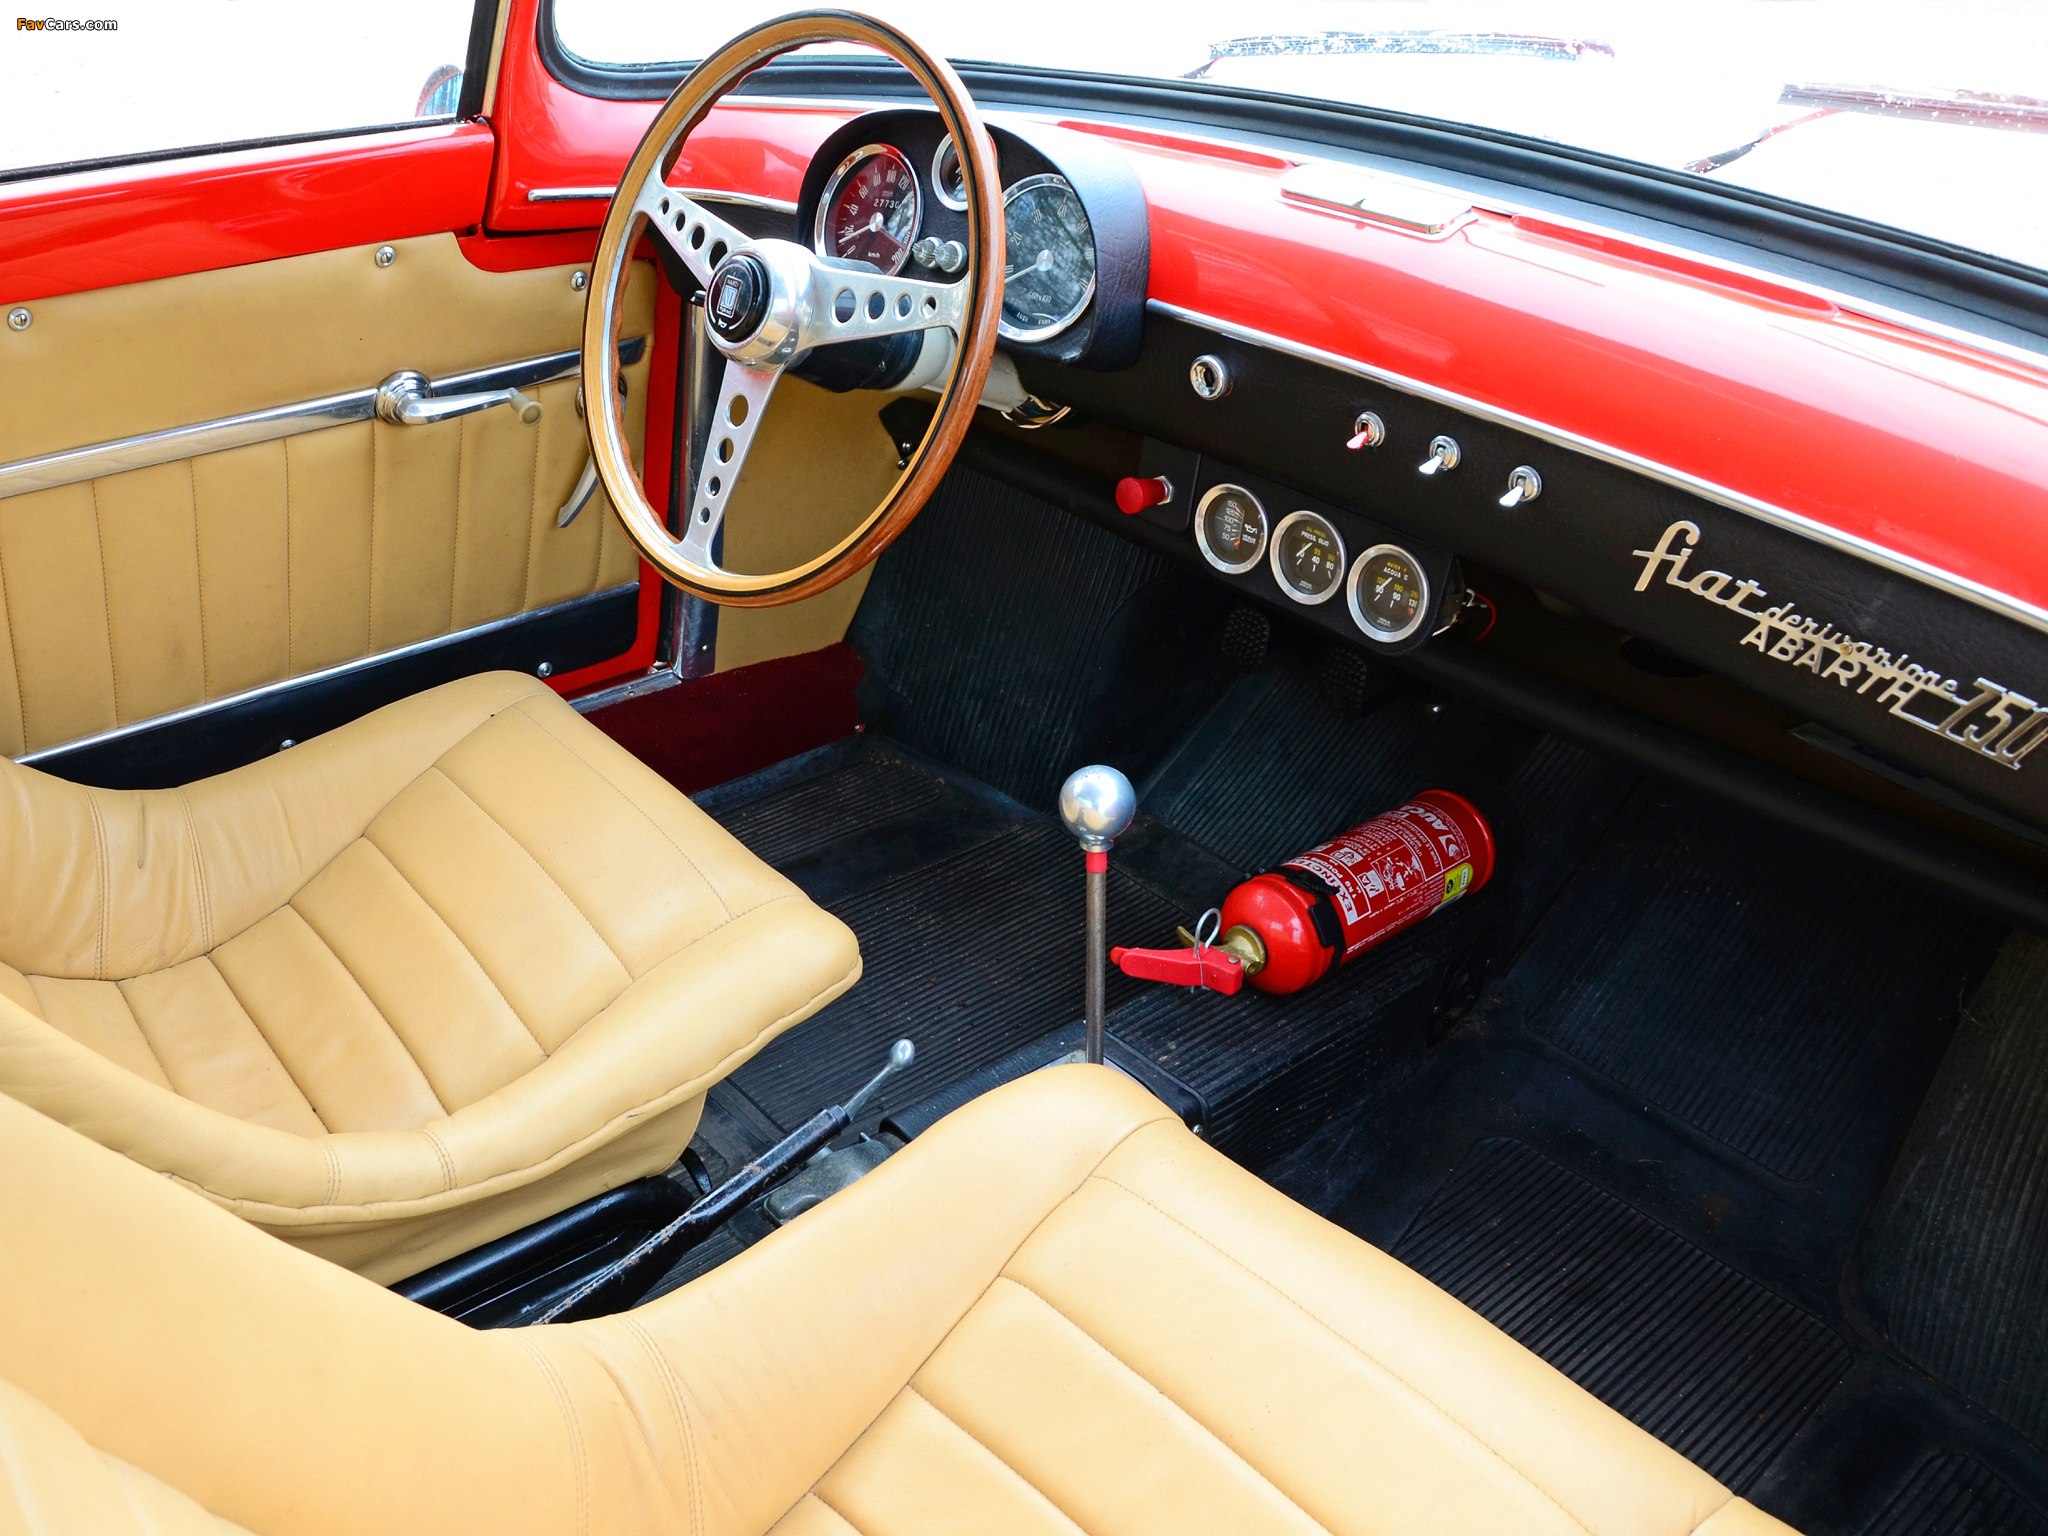 Fiat Abarth 750 Coupe By Viotti 1956 Images 2048x1536